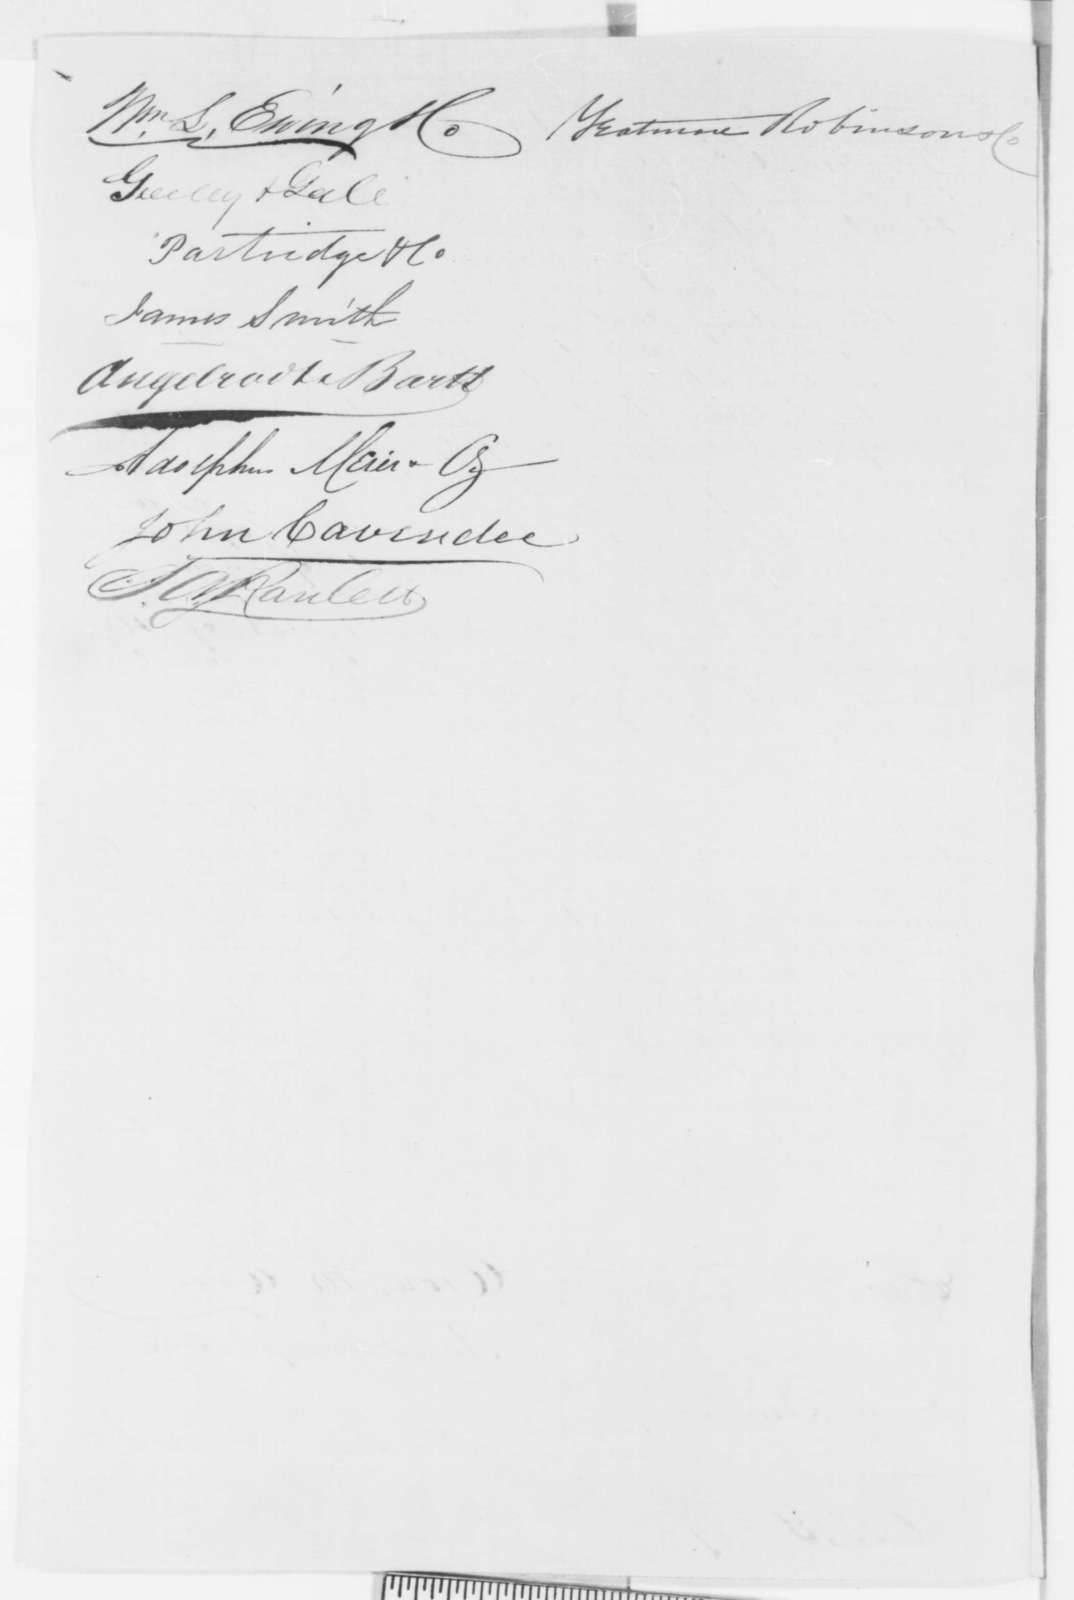 Missouri Merchants to Abraham Lincoln, Friday, February 07, 1862  (Petition recommending David Davis)